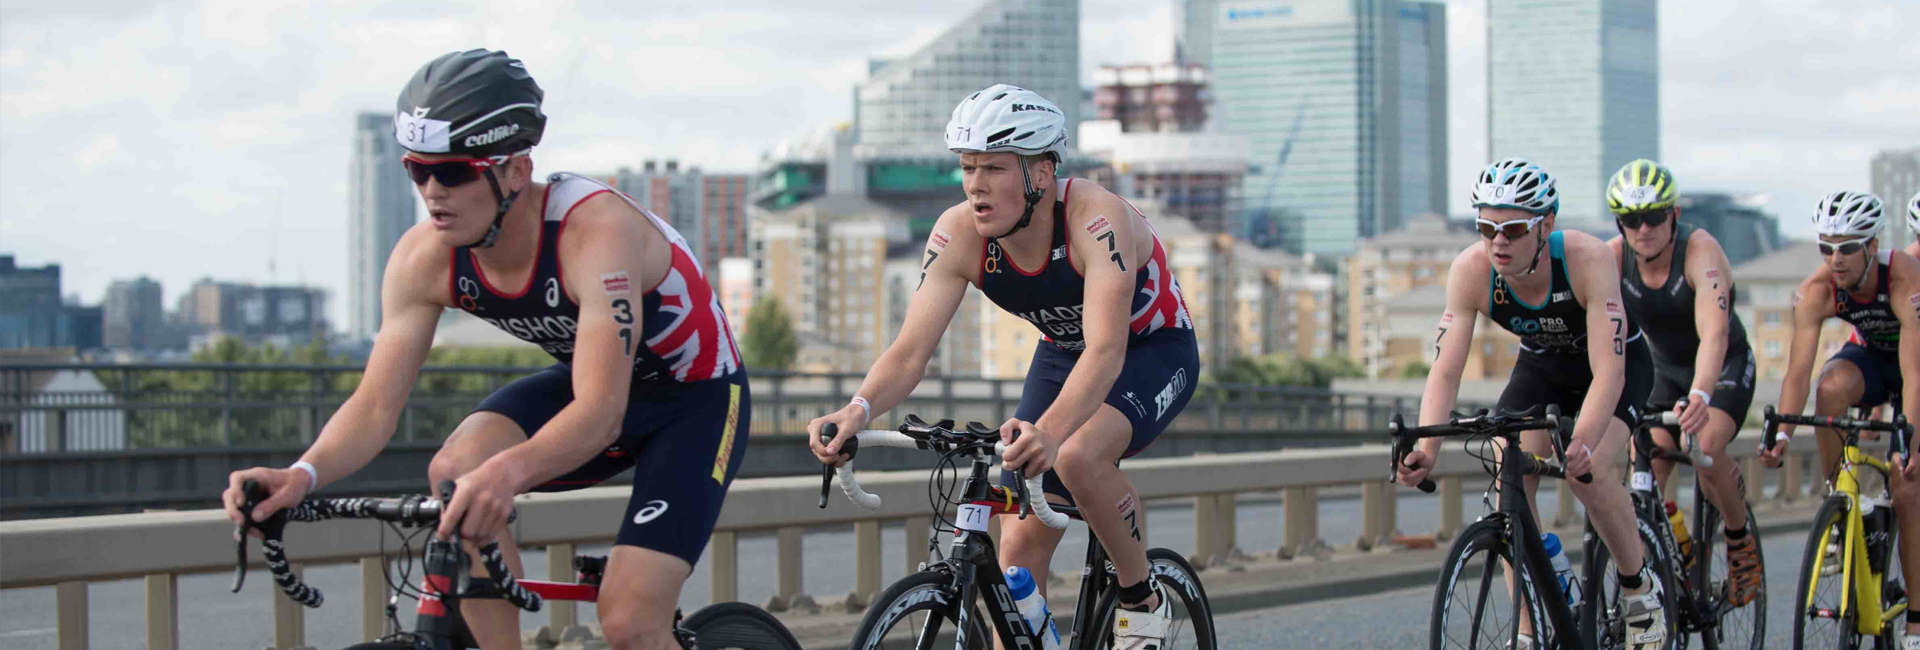 Group of athlete cyclists taking part in a triathlon race